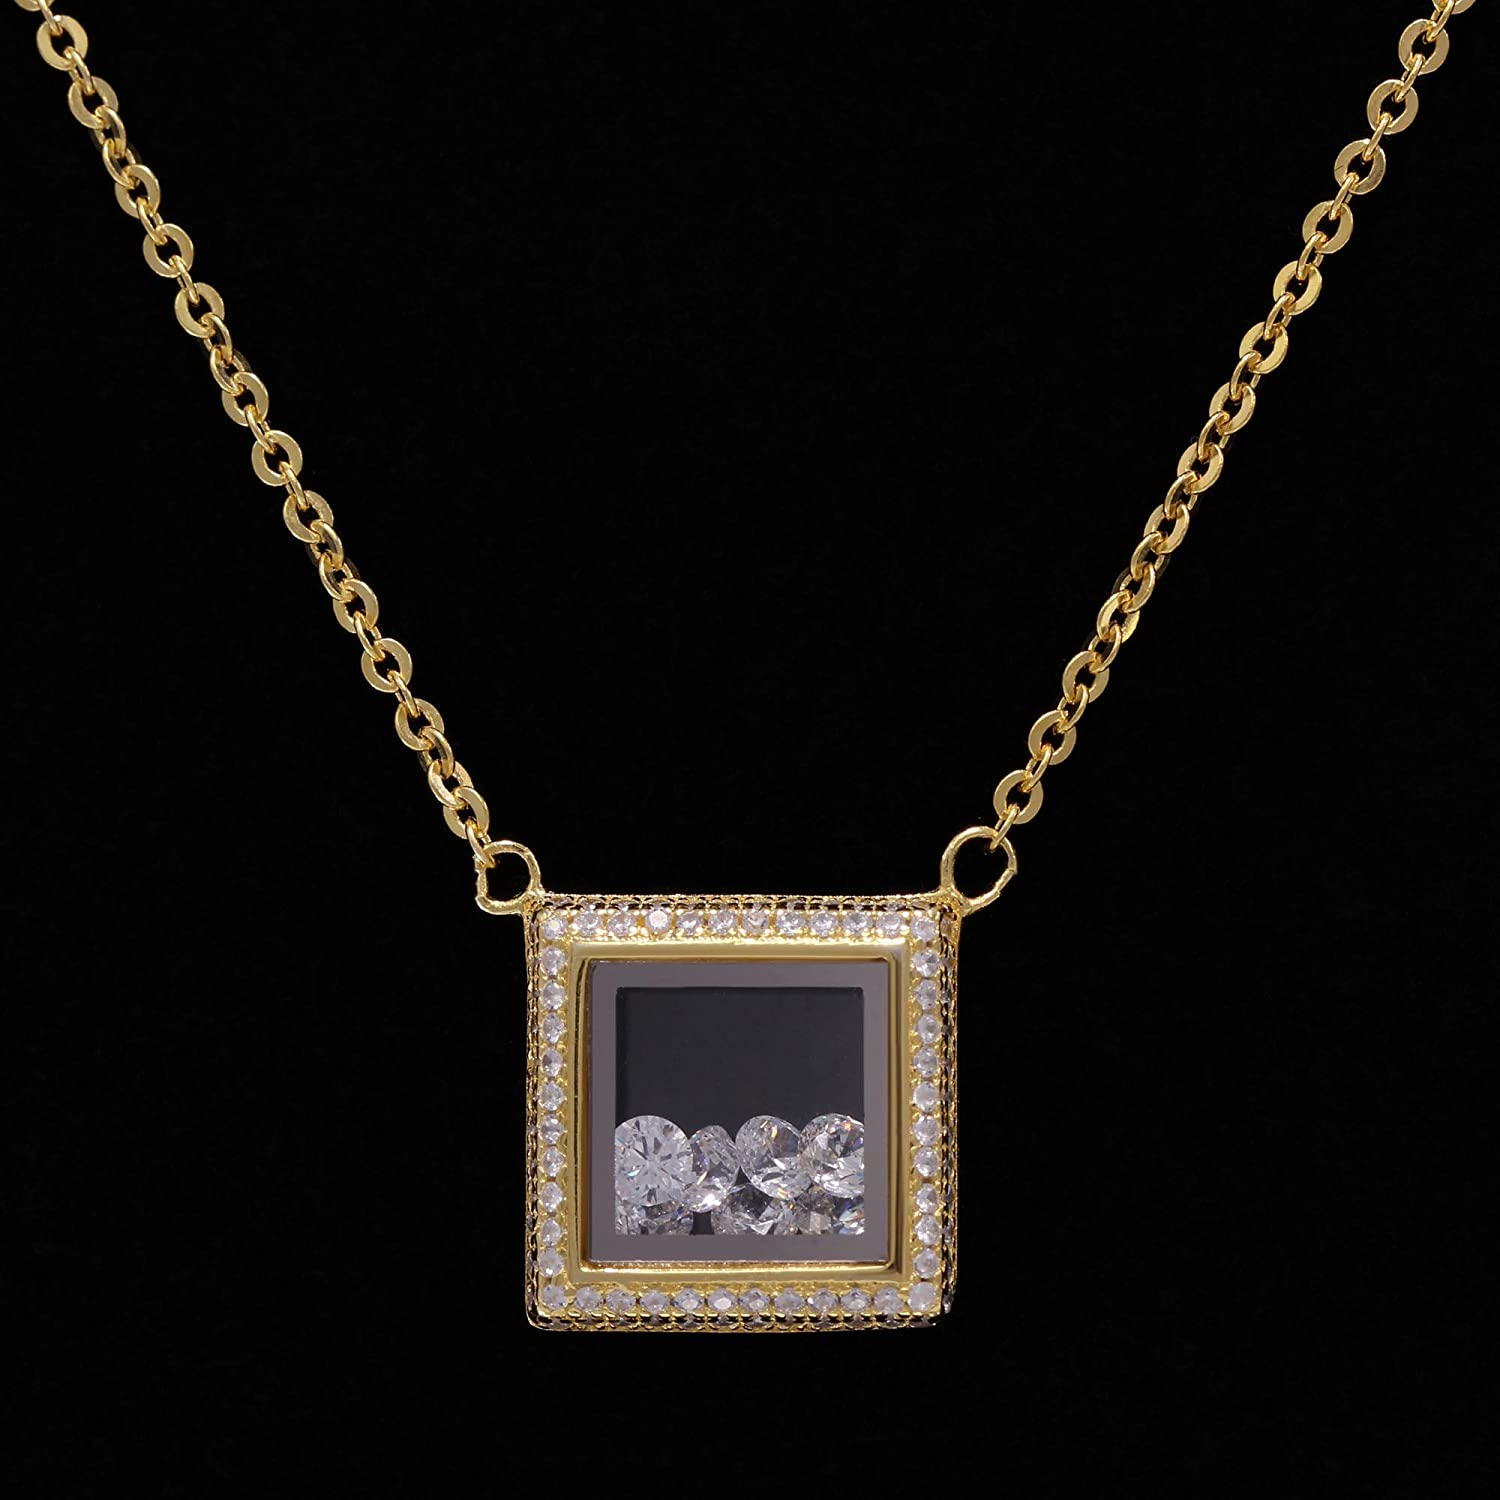 EV9-9041 Fashion Square locket Glass Pendant Necklace with Loose Crystals inside in Sterling Silver Evan Jewels